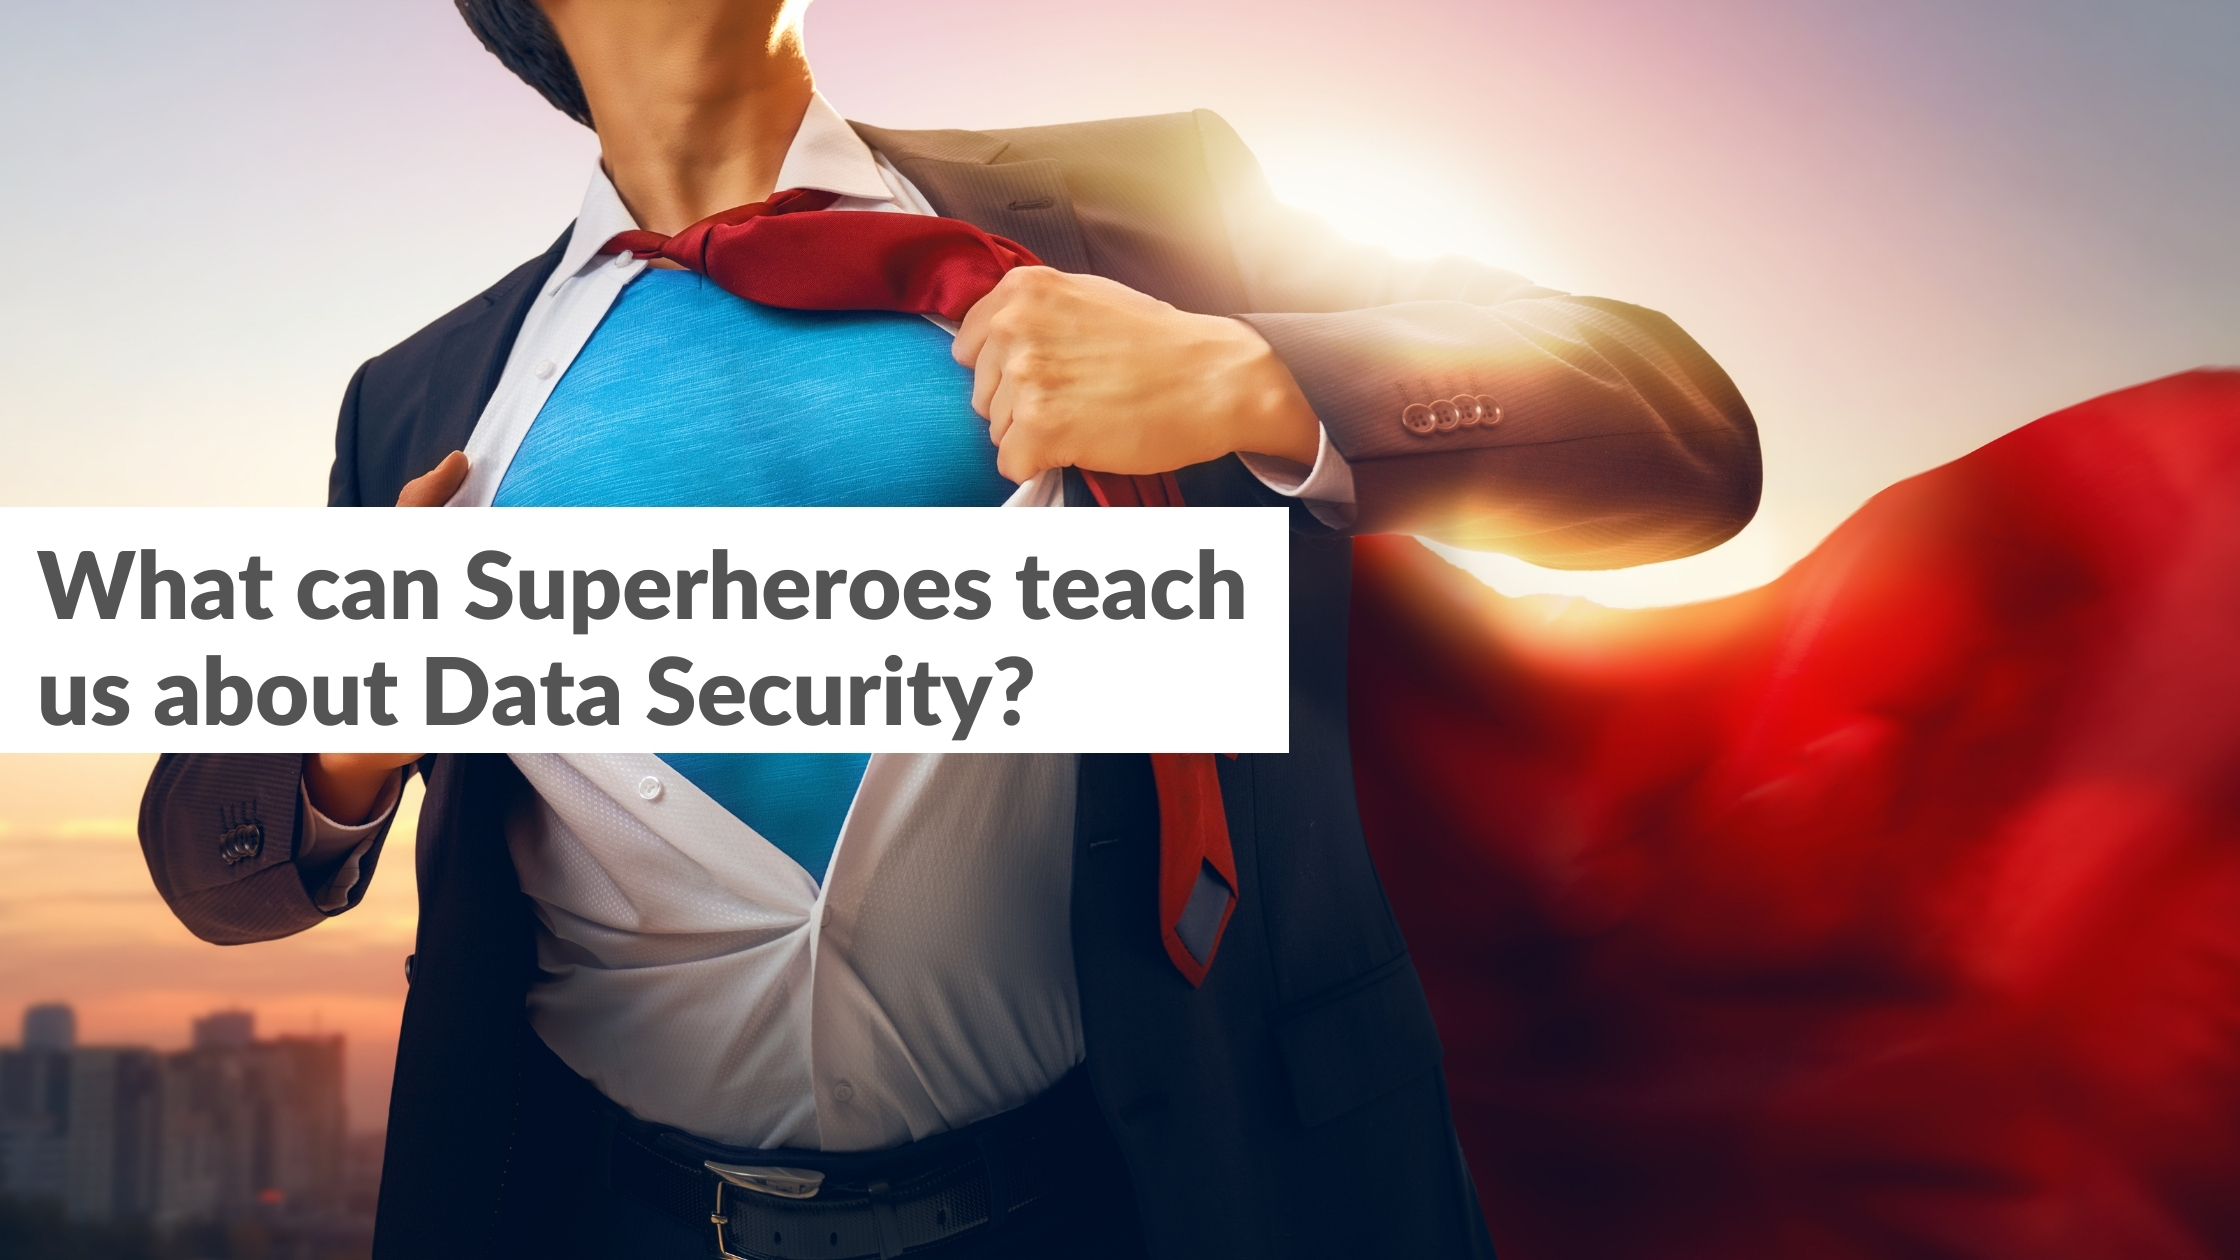 What can Superheroes teach us about Data Security?